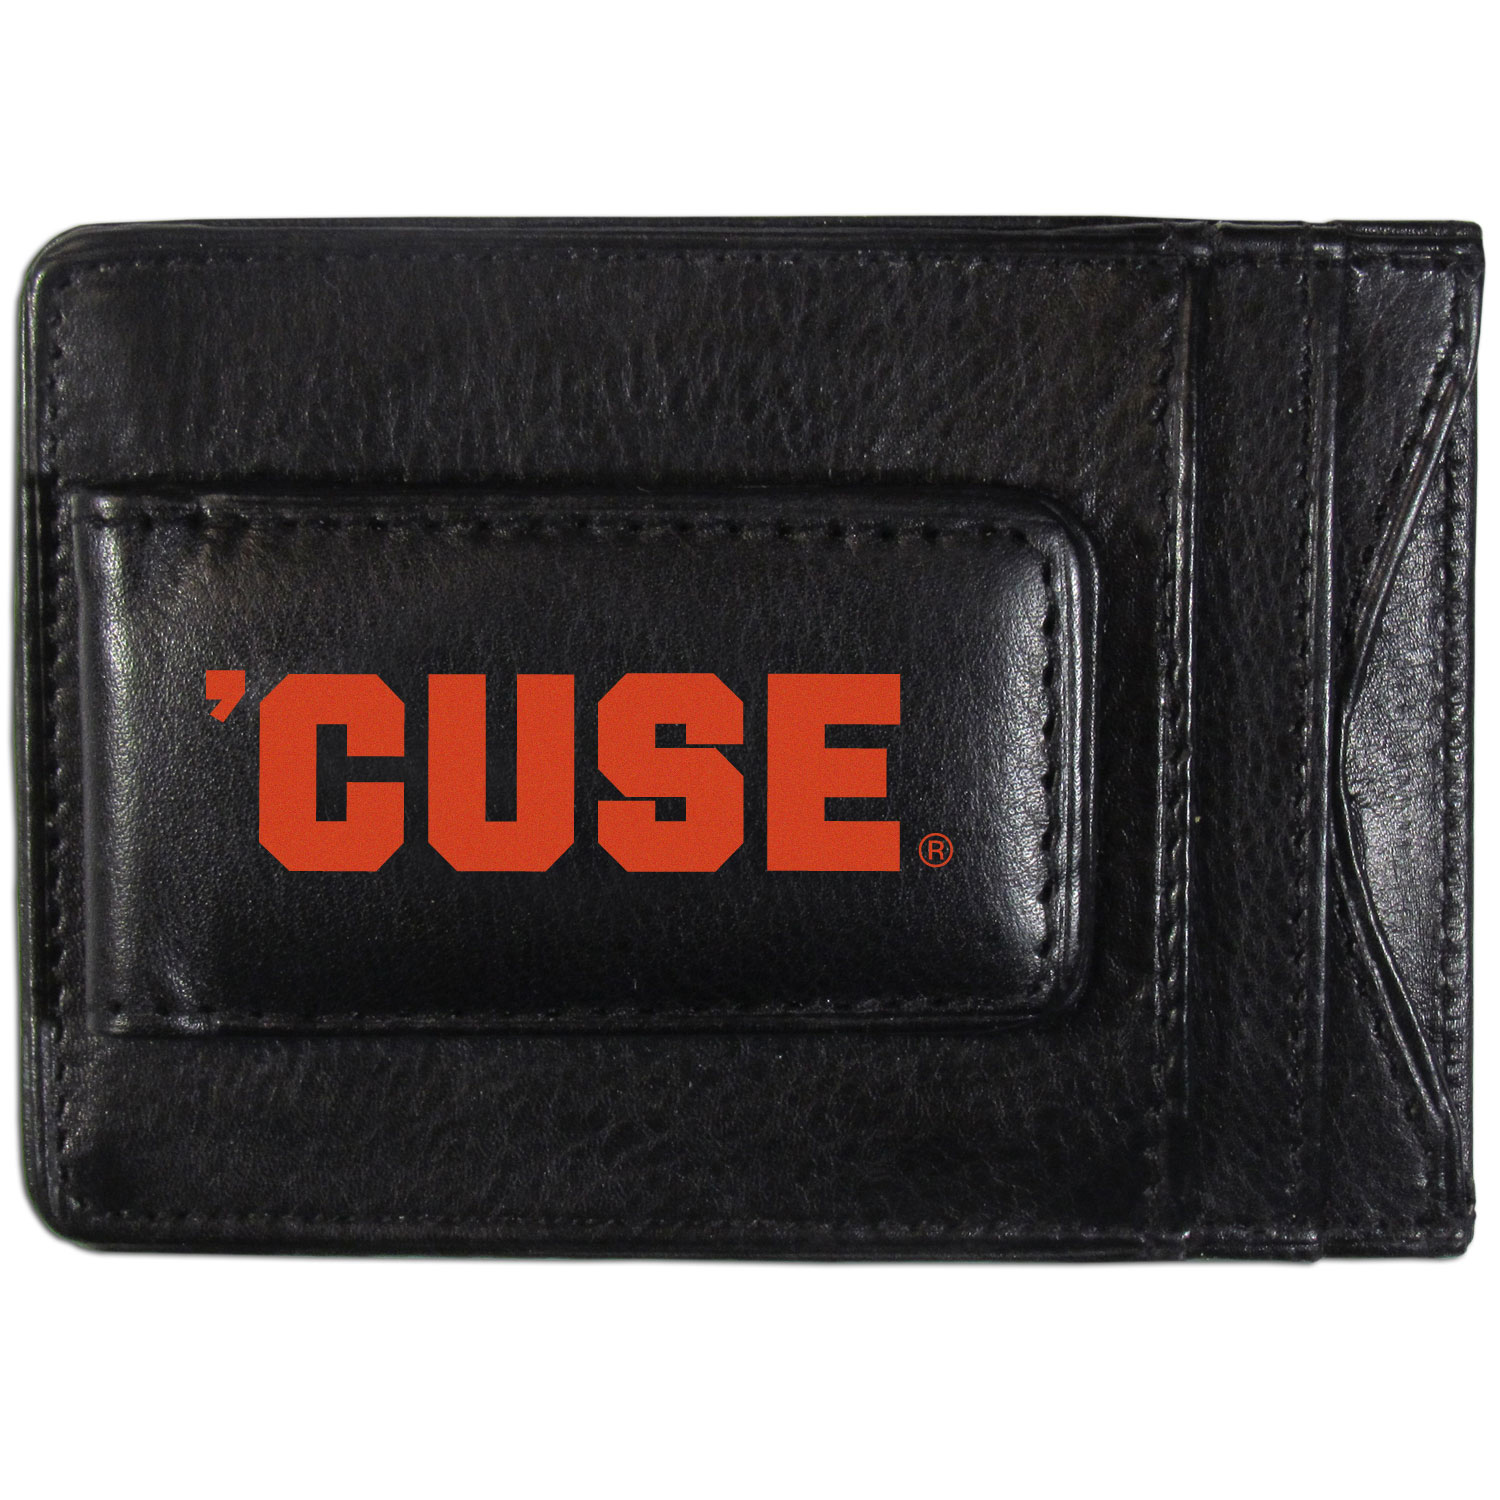 Syracuse Orange Logo Leather Cash and Cardholder - This super slim leather wallet lets you have all the benefits of a money clip while keeping the organization of a wallet. On one side of this front pocket wallet there is a strong, magnetic money clip to keep your cash easily accessible and the?Syracuse Orange team logo on the front. The versatile men's accessory is a perfect addition to your fan apparel.